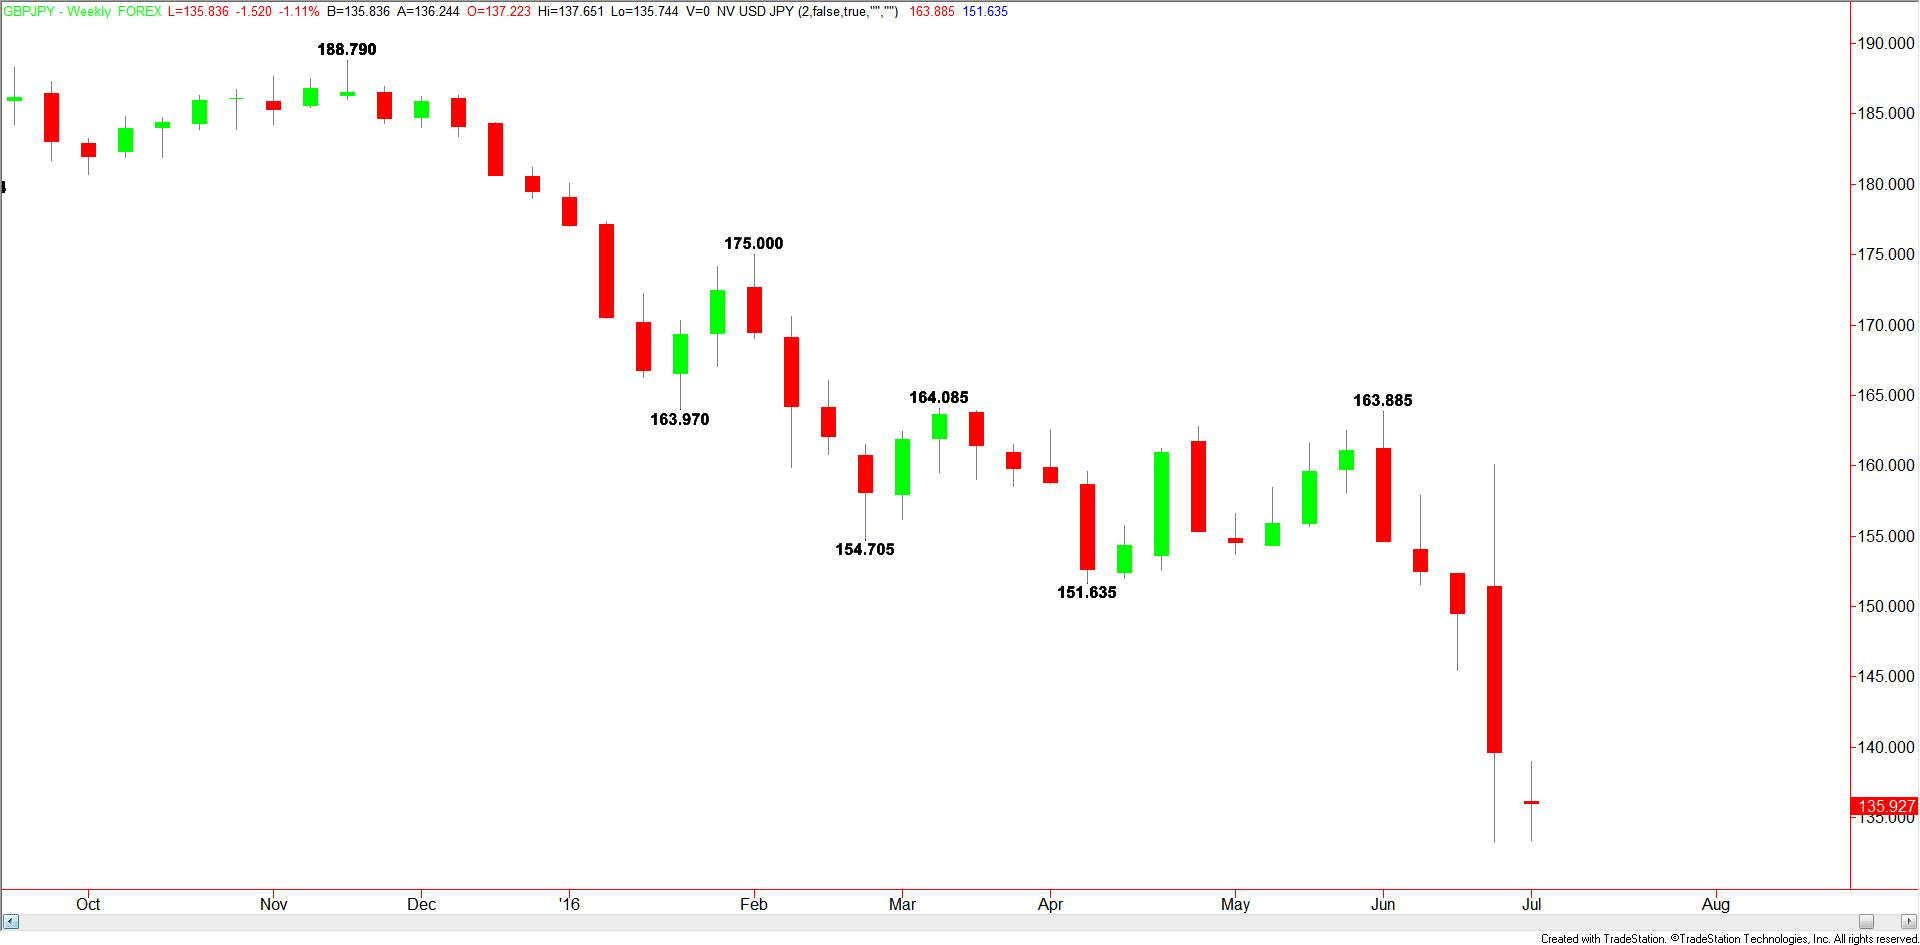 Weekly GBPJPY